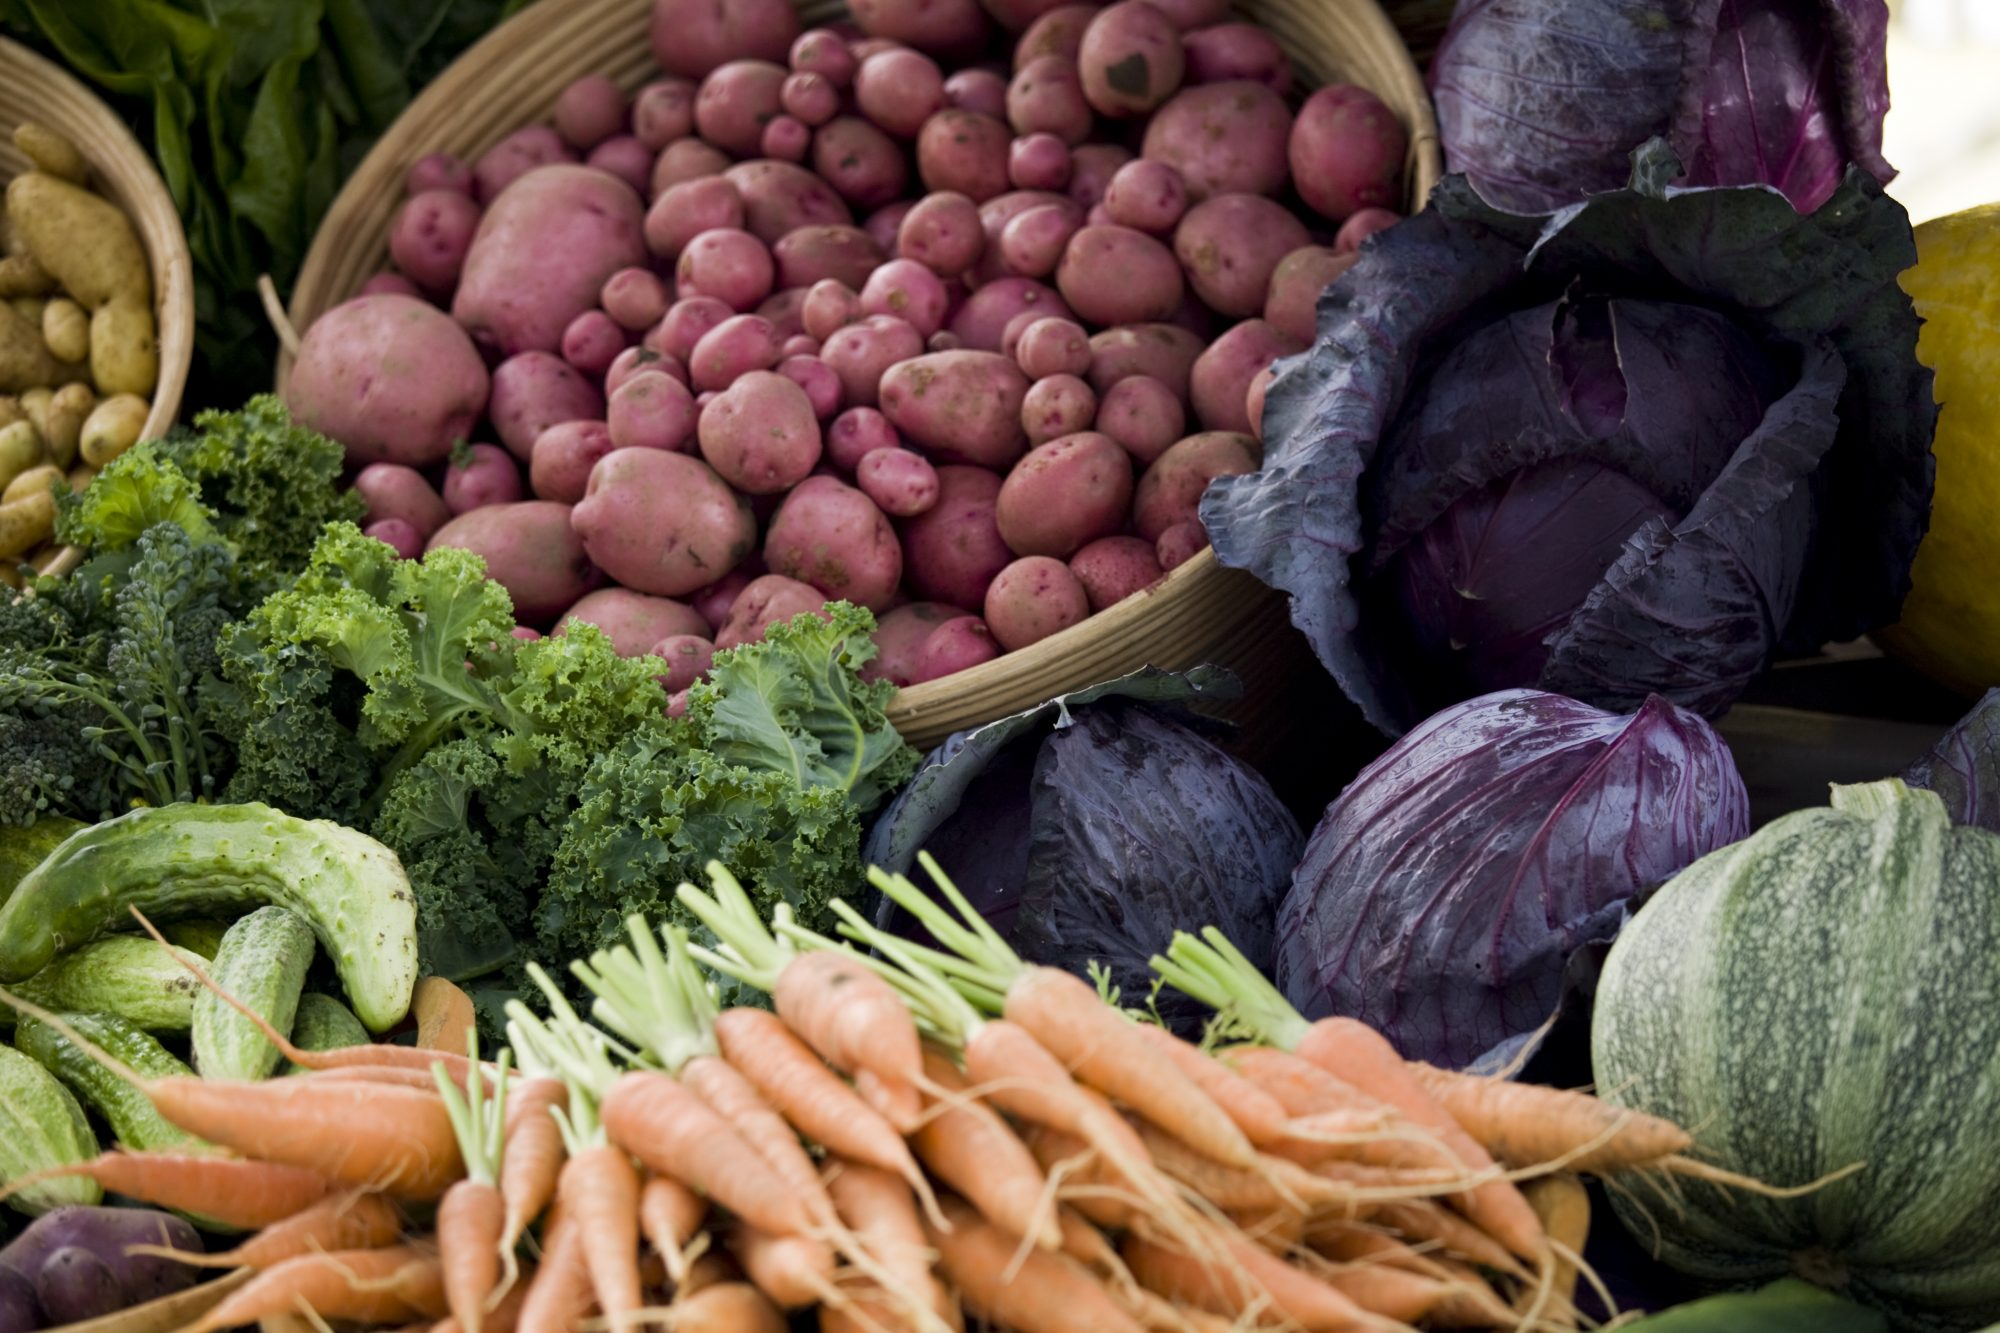 Abundant fresh produce piled high at a farmers market. Check out my